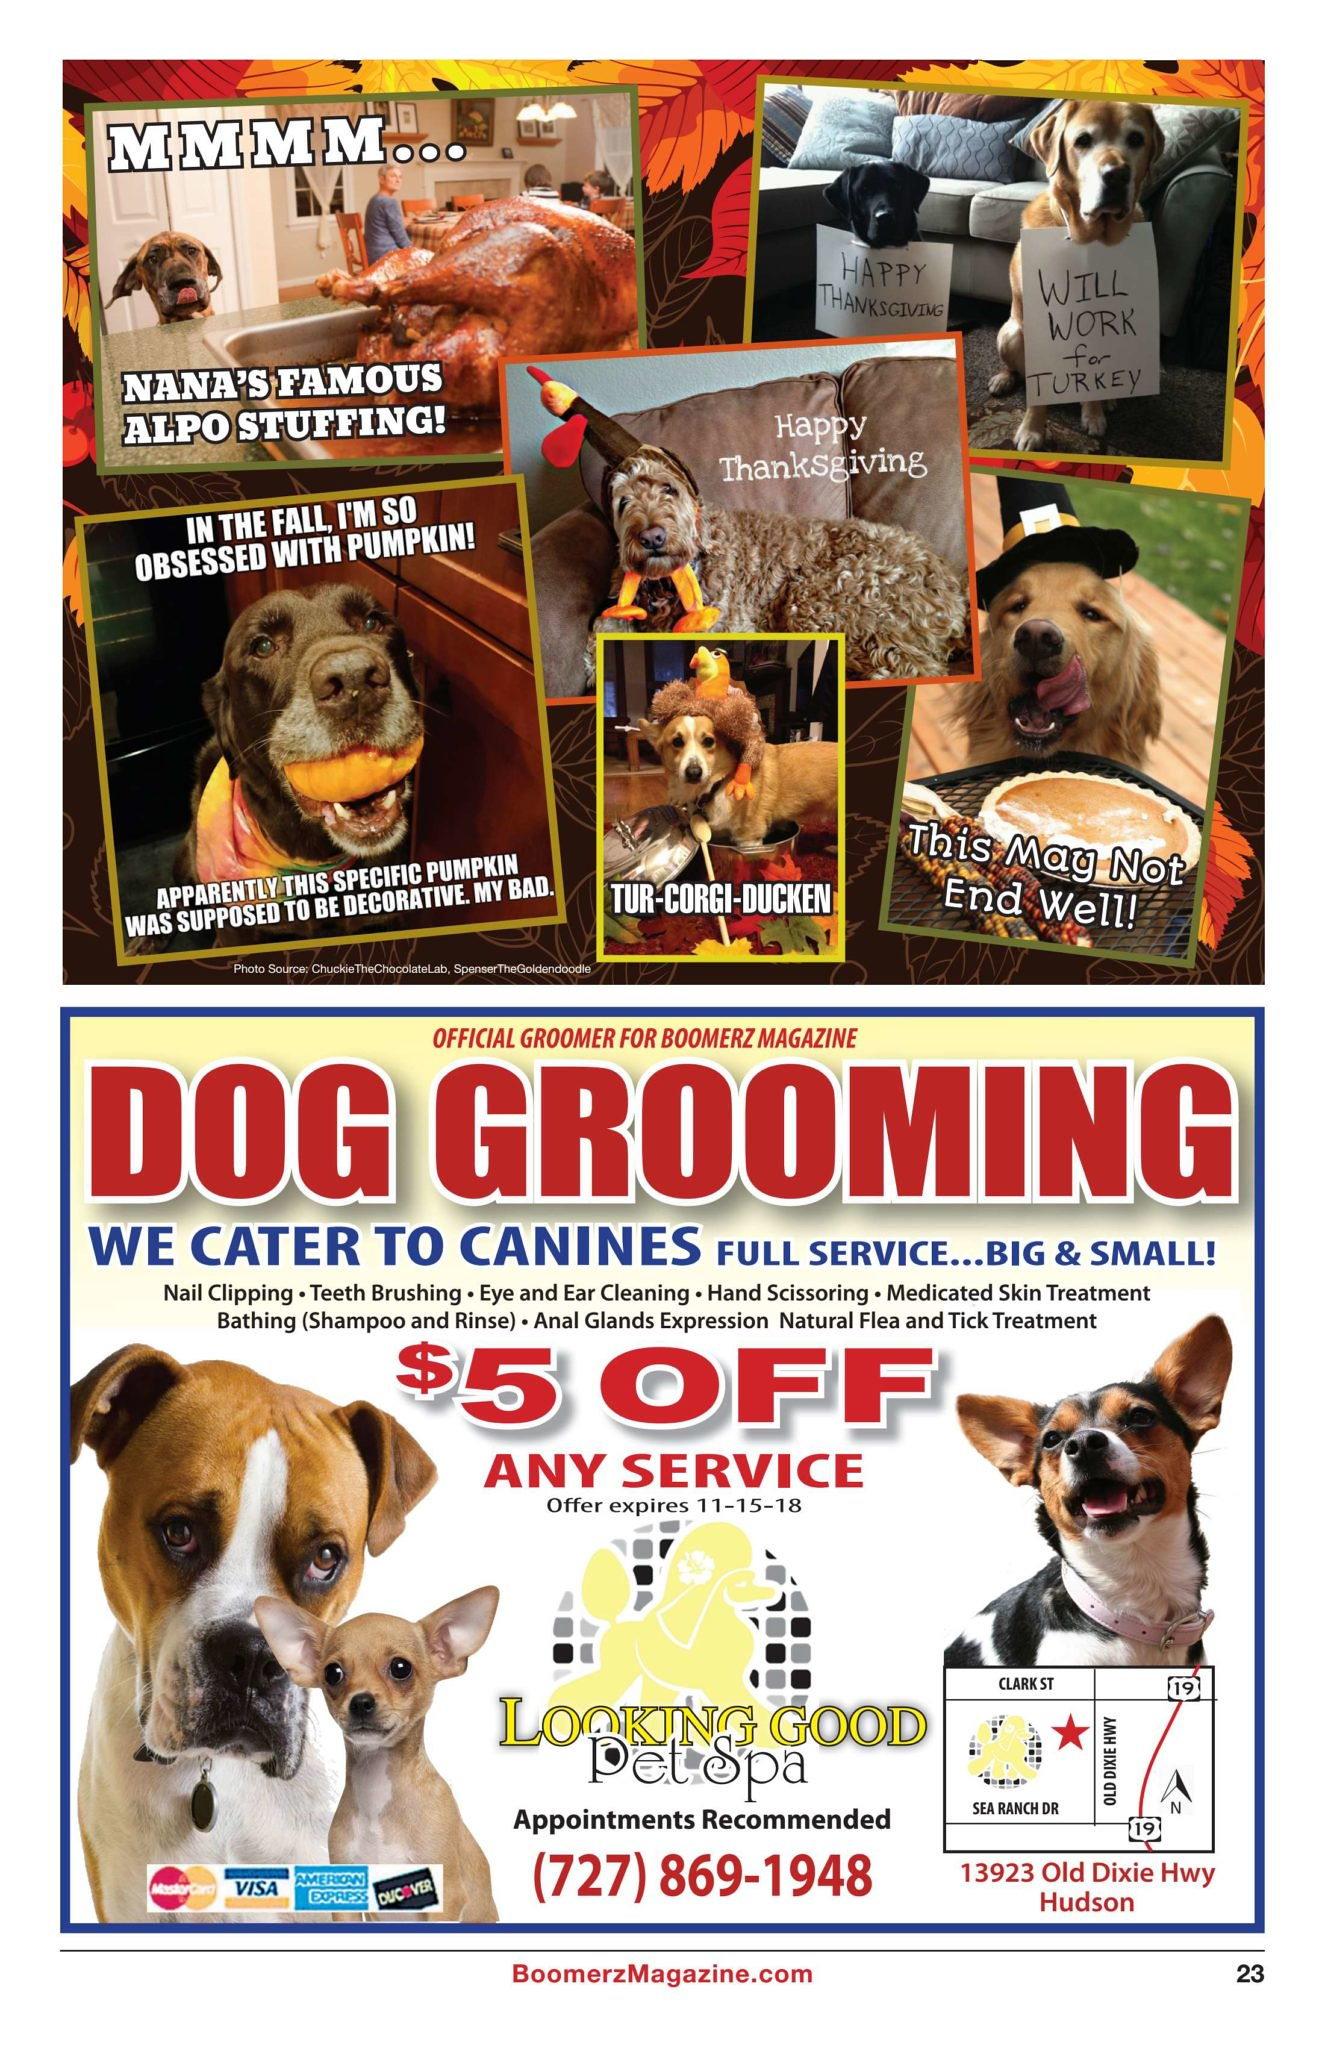 Boomerz Magazine 2018 November Dog Grooming